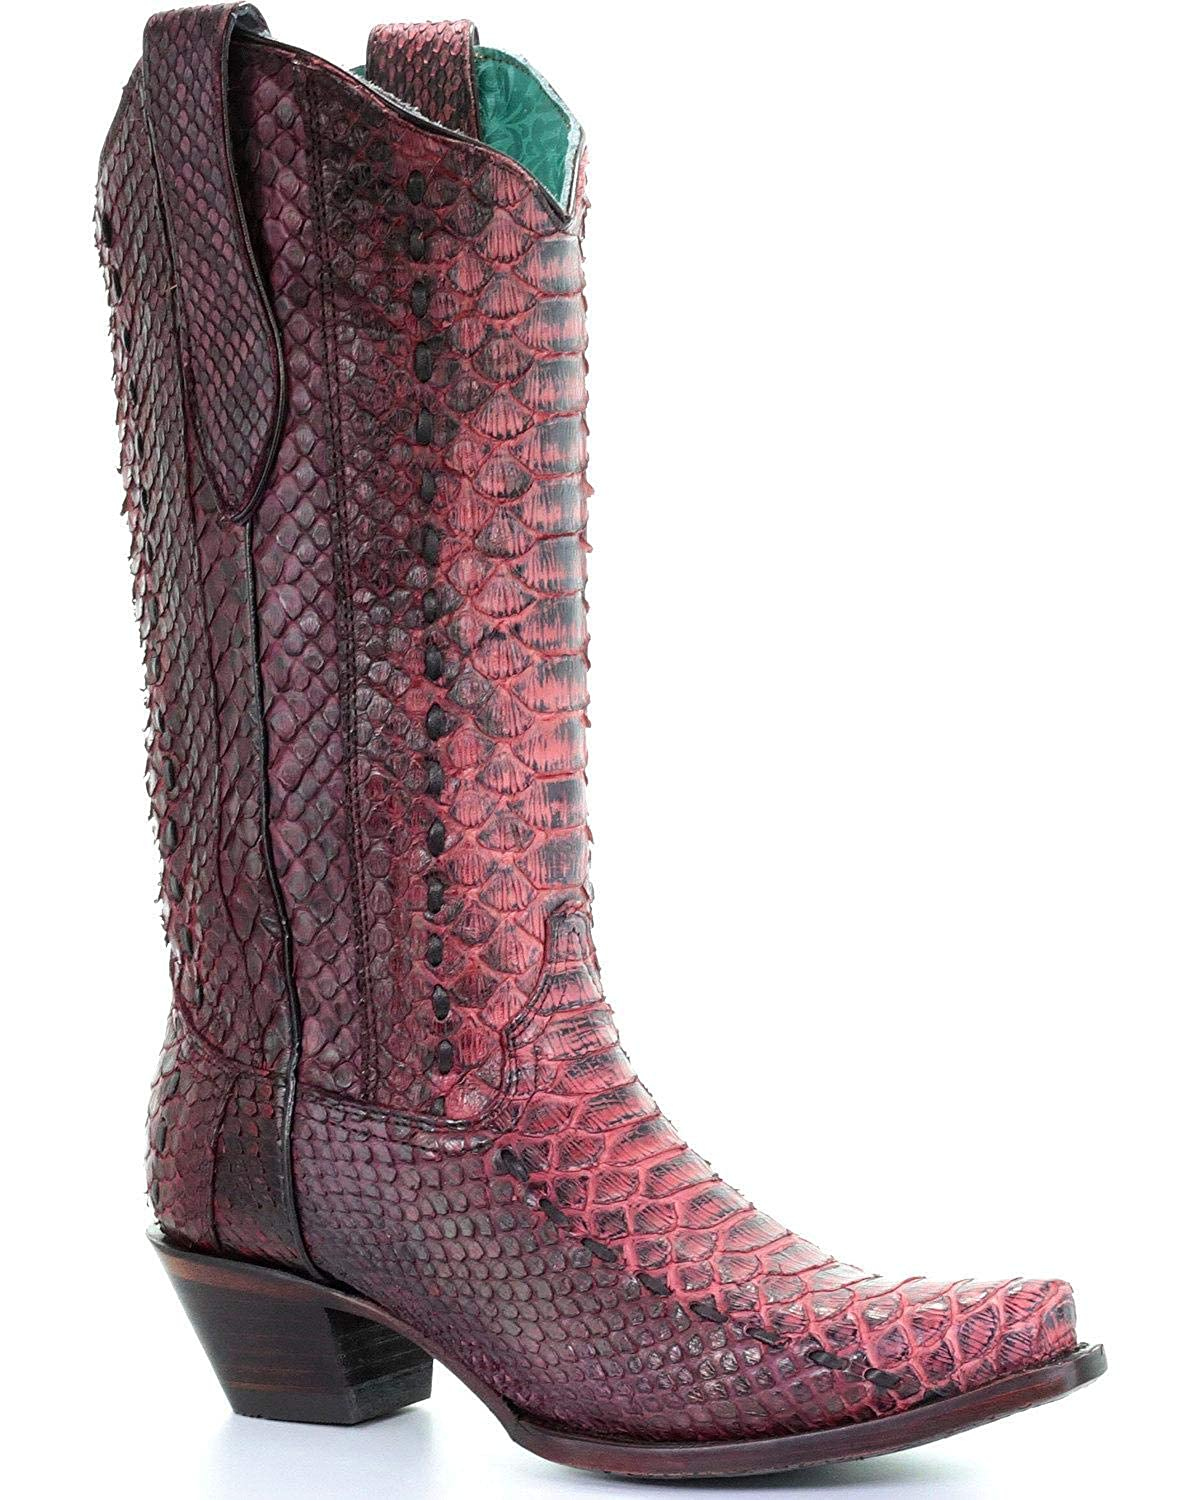 8c2a0dc5df5 CORRAL Women's Full Python Woven Cowgirl Boot Snip Toe